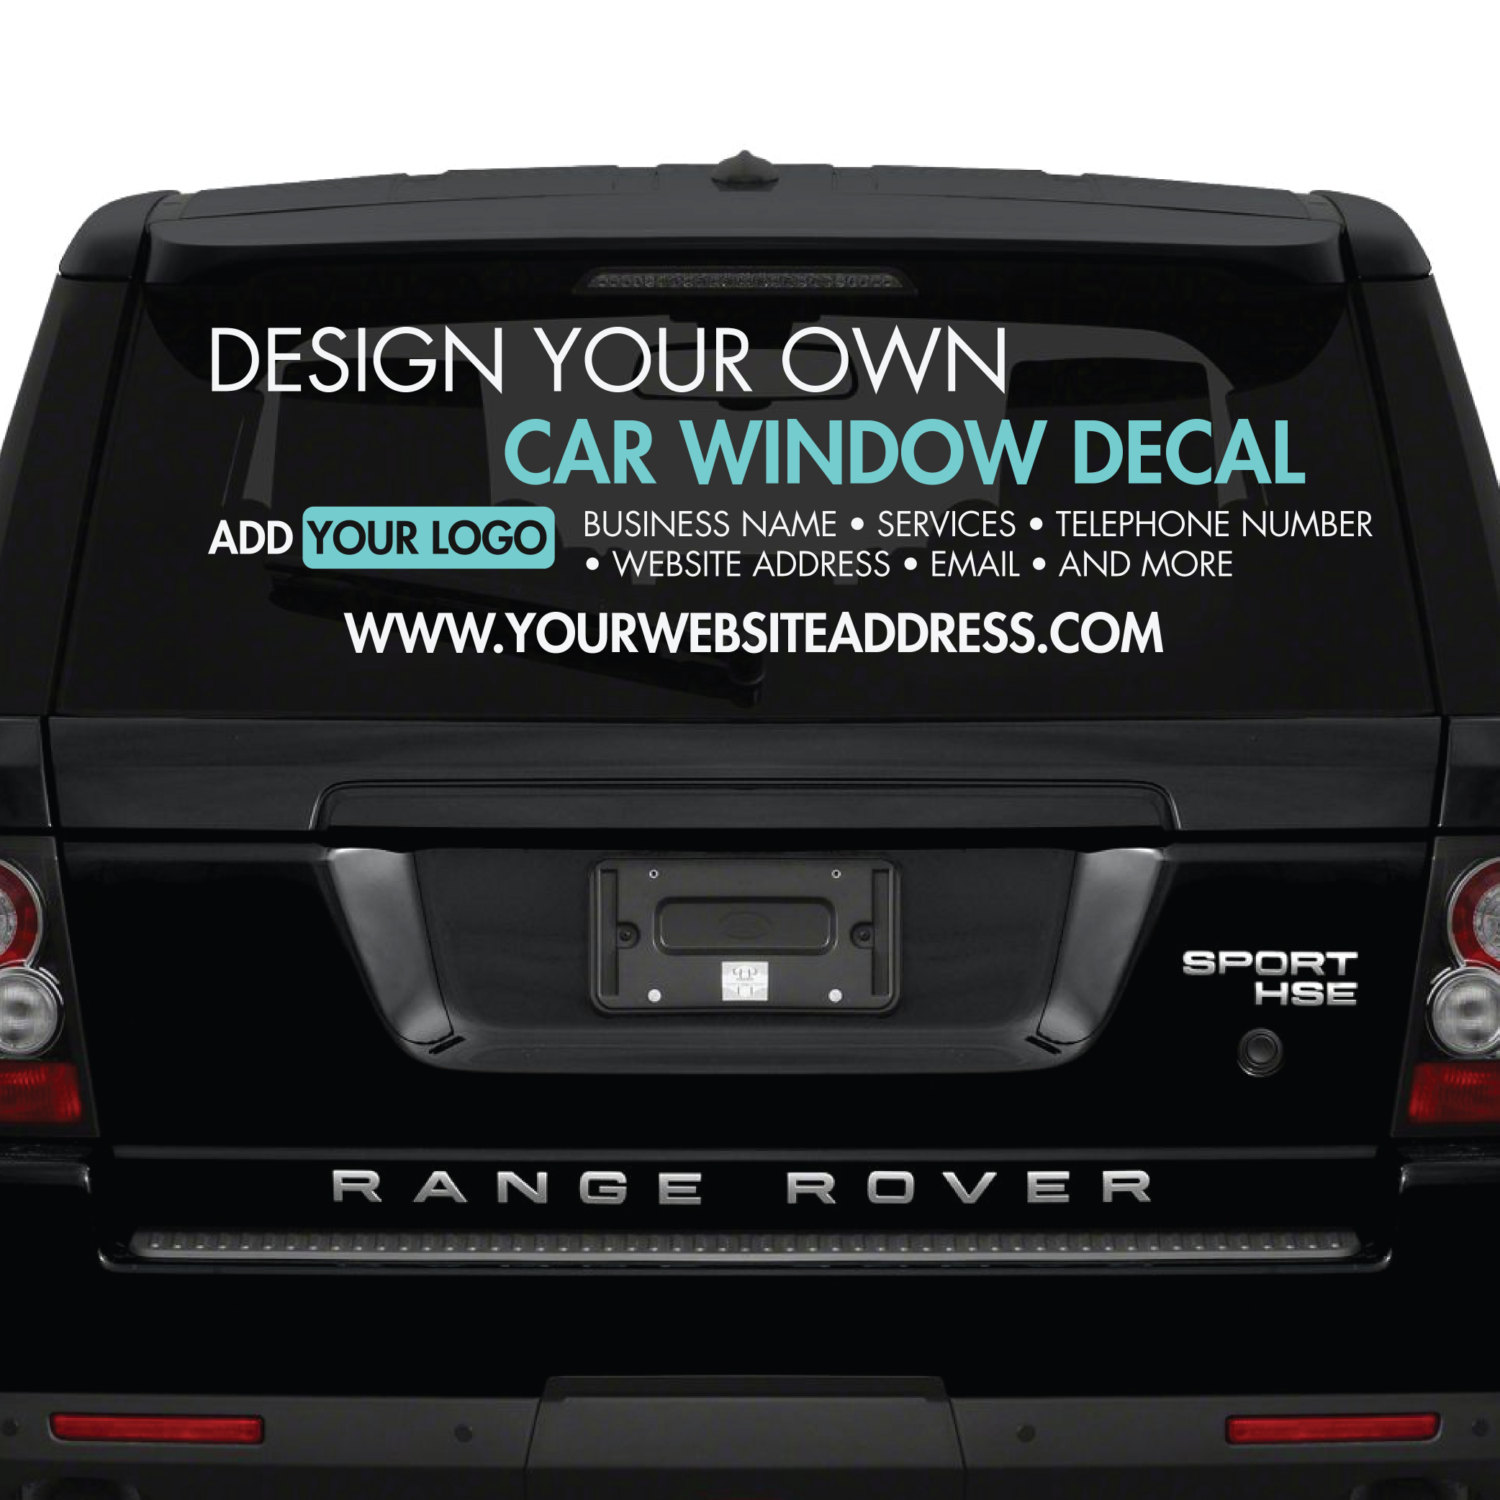 Design Your Own Car >> Car Window Stickers Design Your Own Custom Made Personalised Car Window Stickers Create Your Own Car Window Stickers